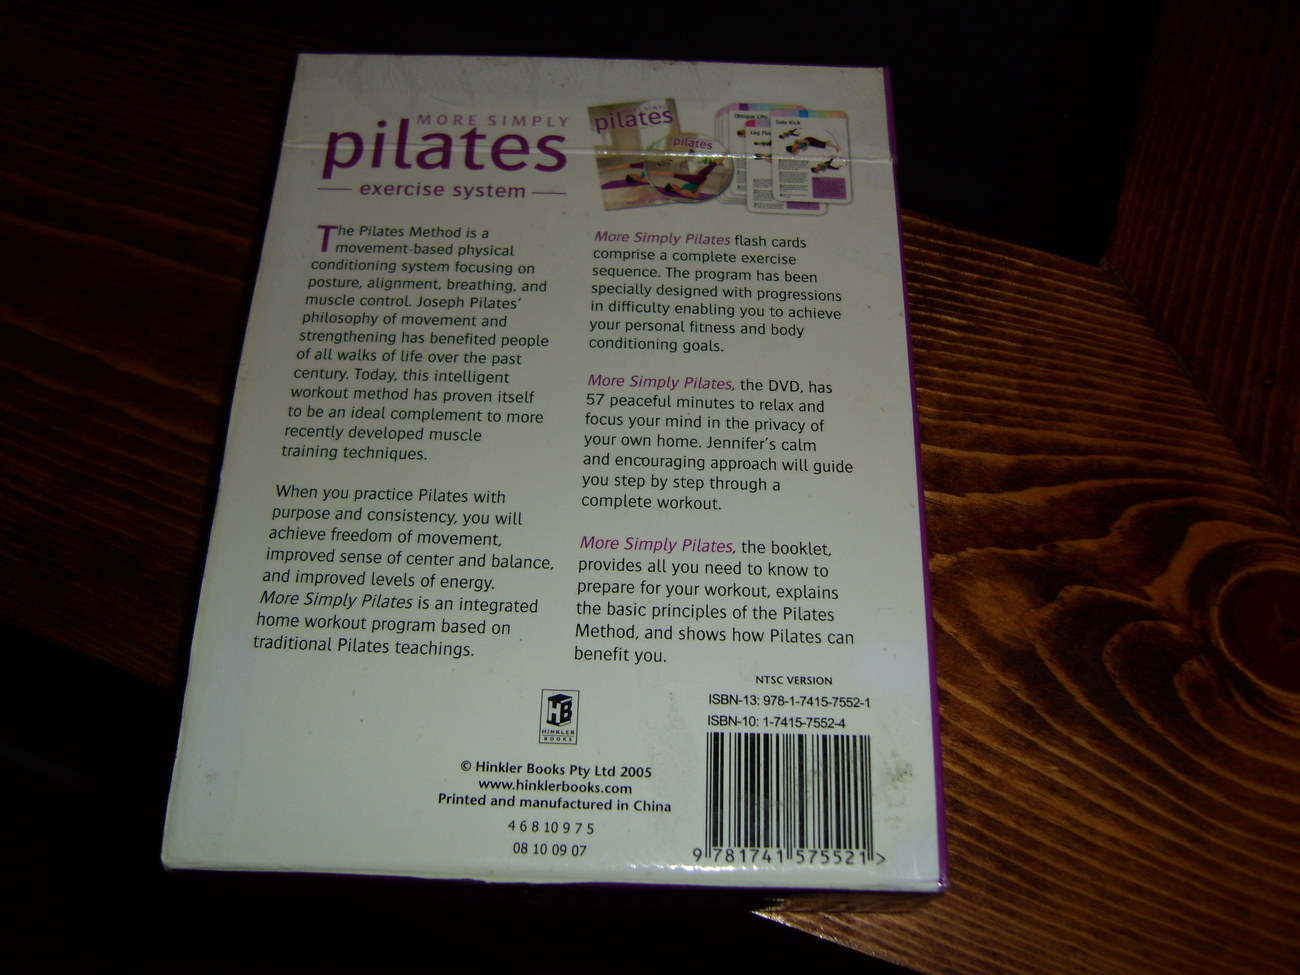 More Simply Pilates flash cards book and DVD set Jennifer Pohlman